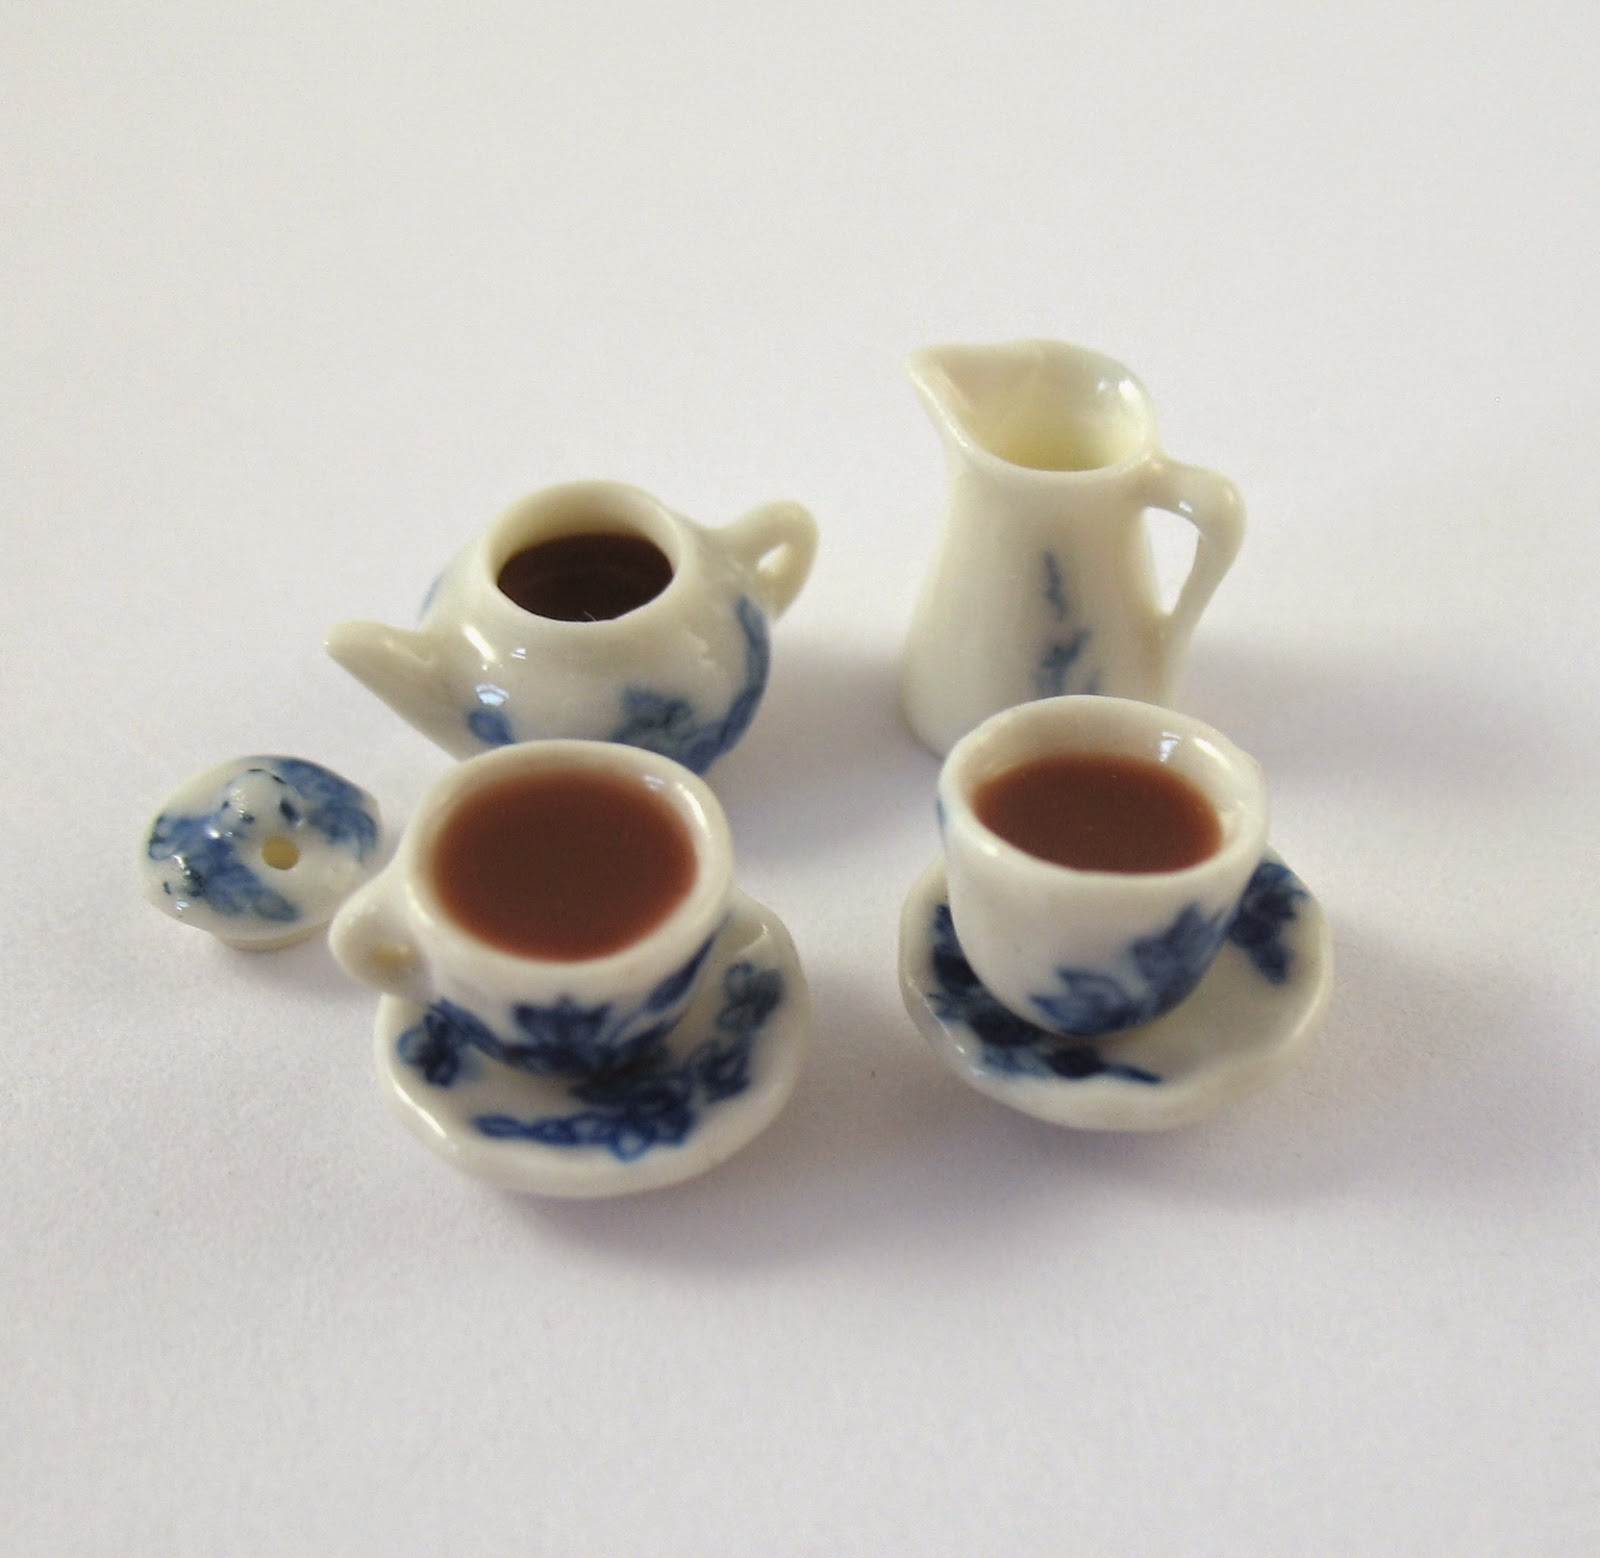 https://www.etsy.com/listing/206844673/dollhouse-miniature-food-tea-set-in-24th?ref=shop_home_active_1